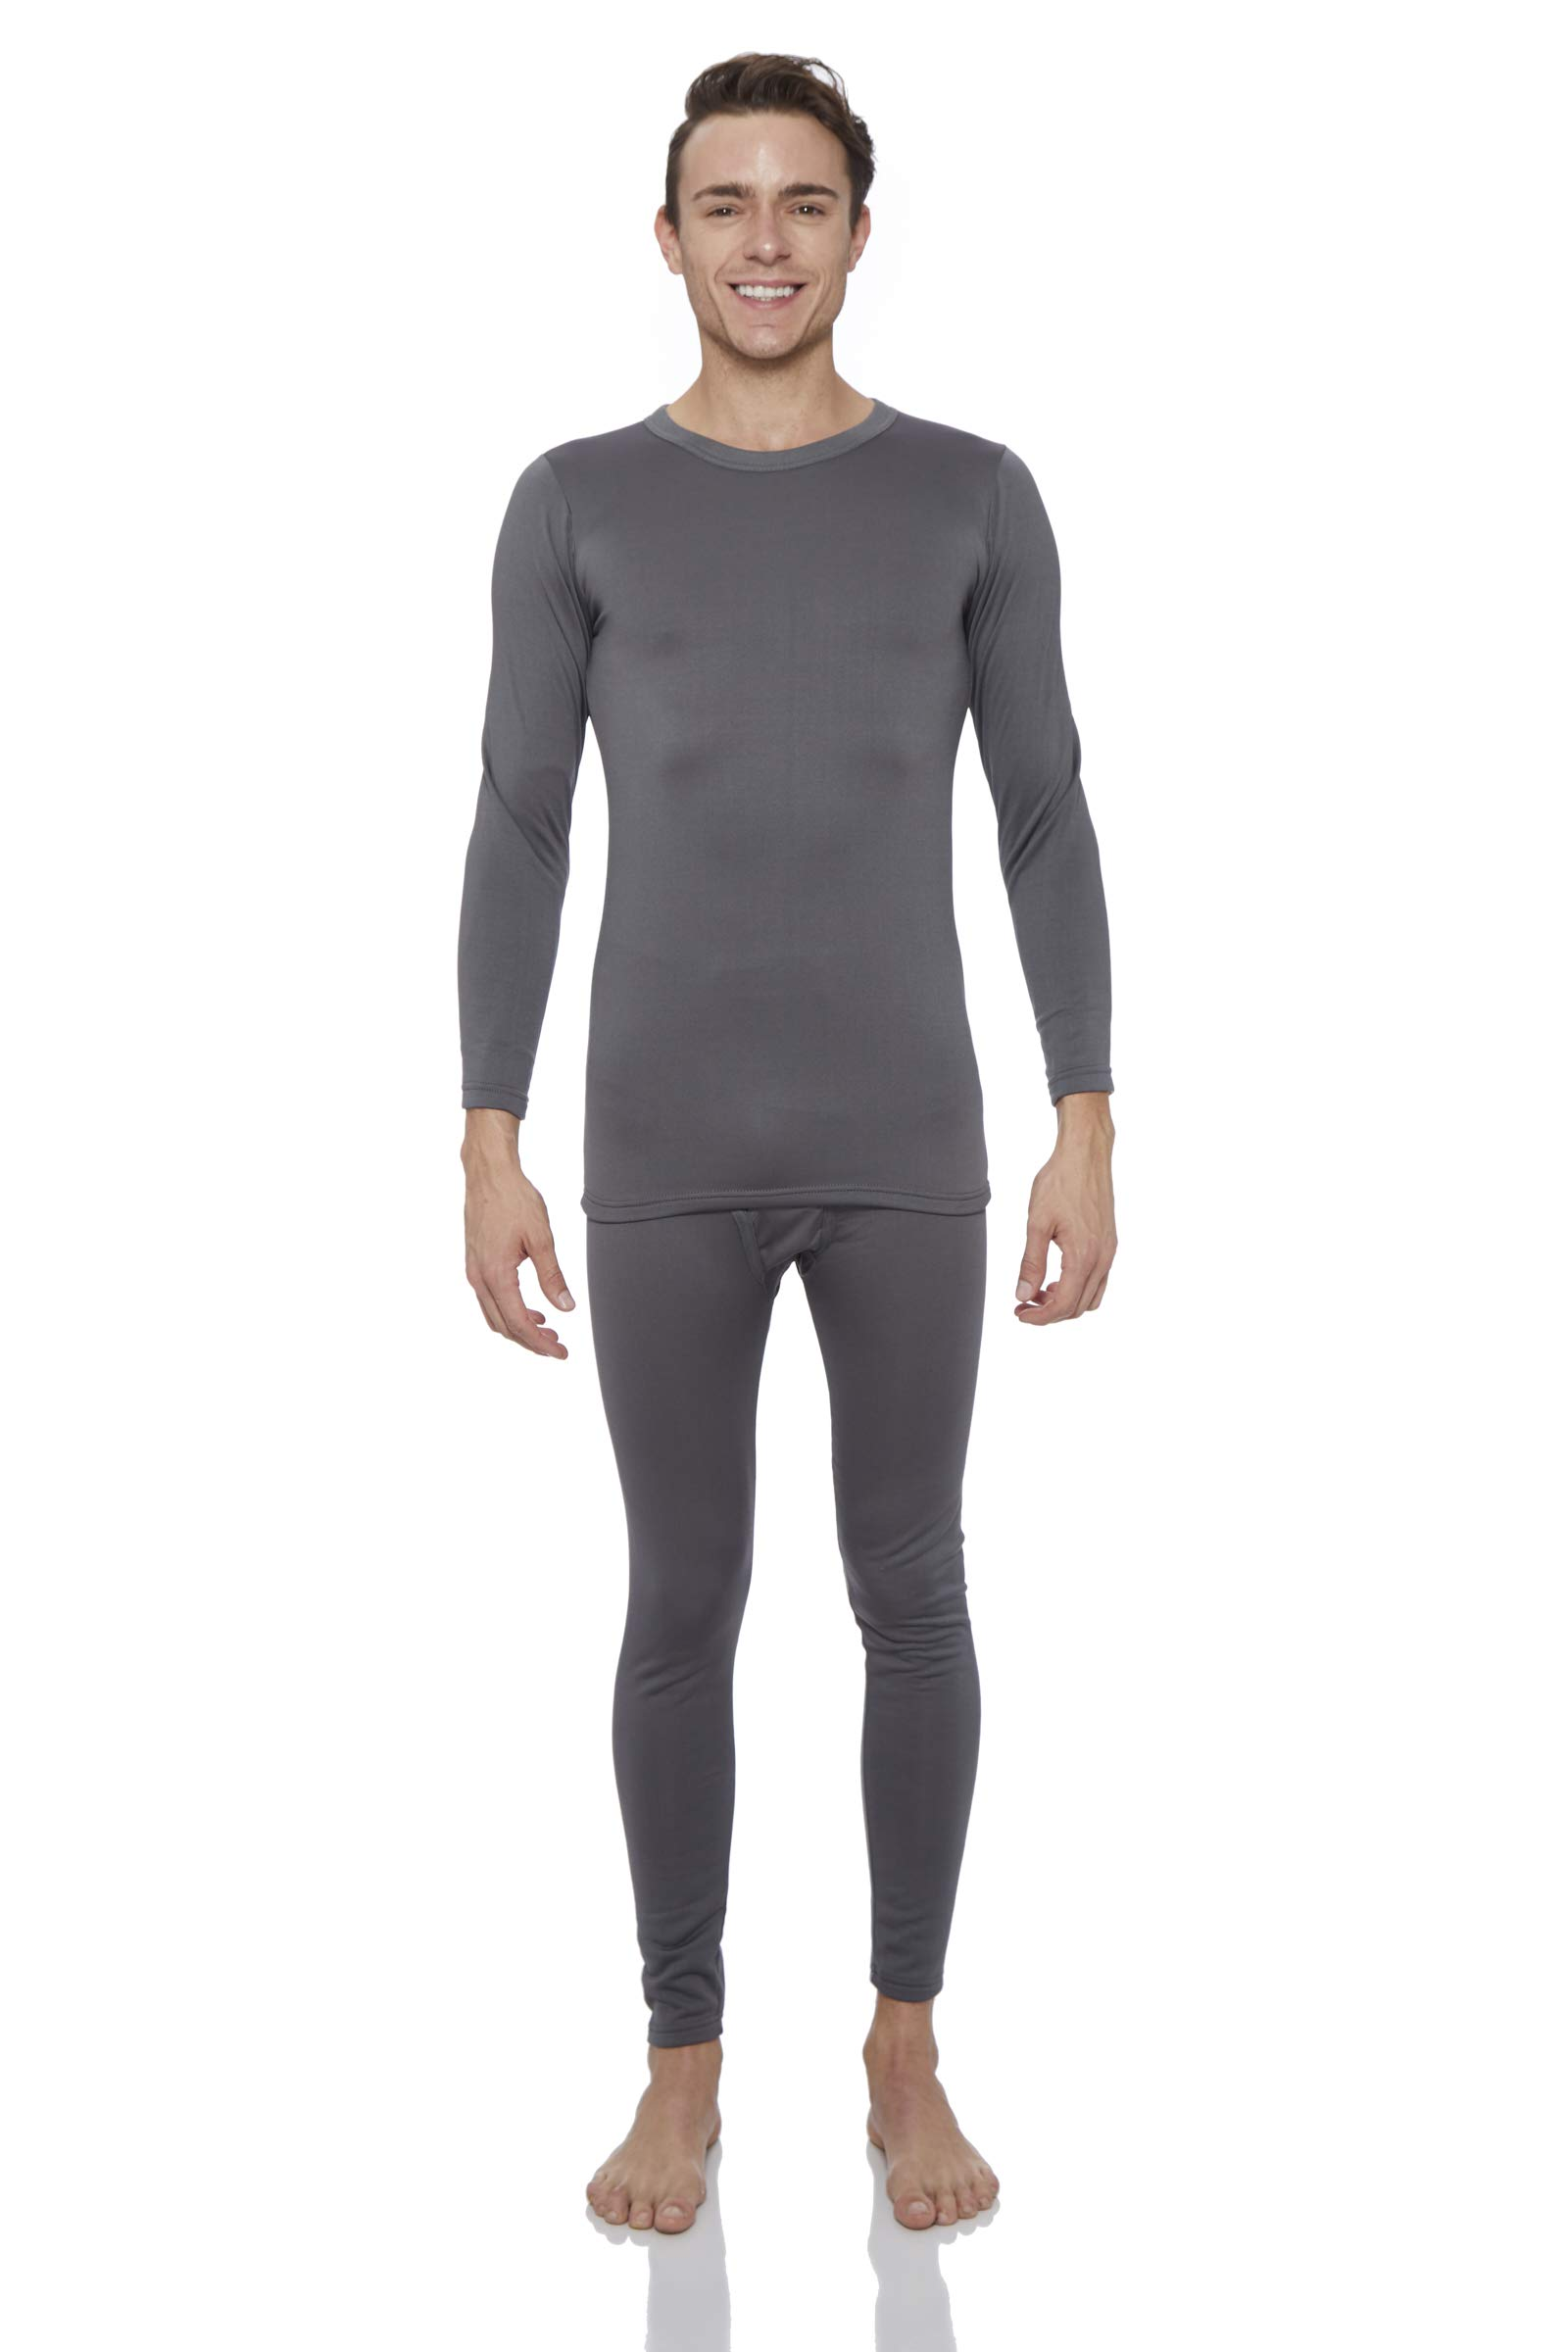 Rocky Thermal Underwear for Men Fleece Lined Thermals Men's Base Layer Long John Set Charcoal by Rocky